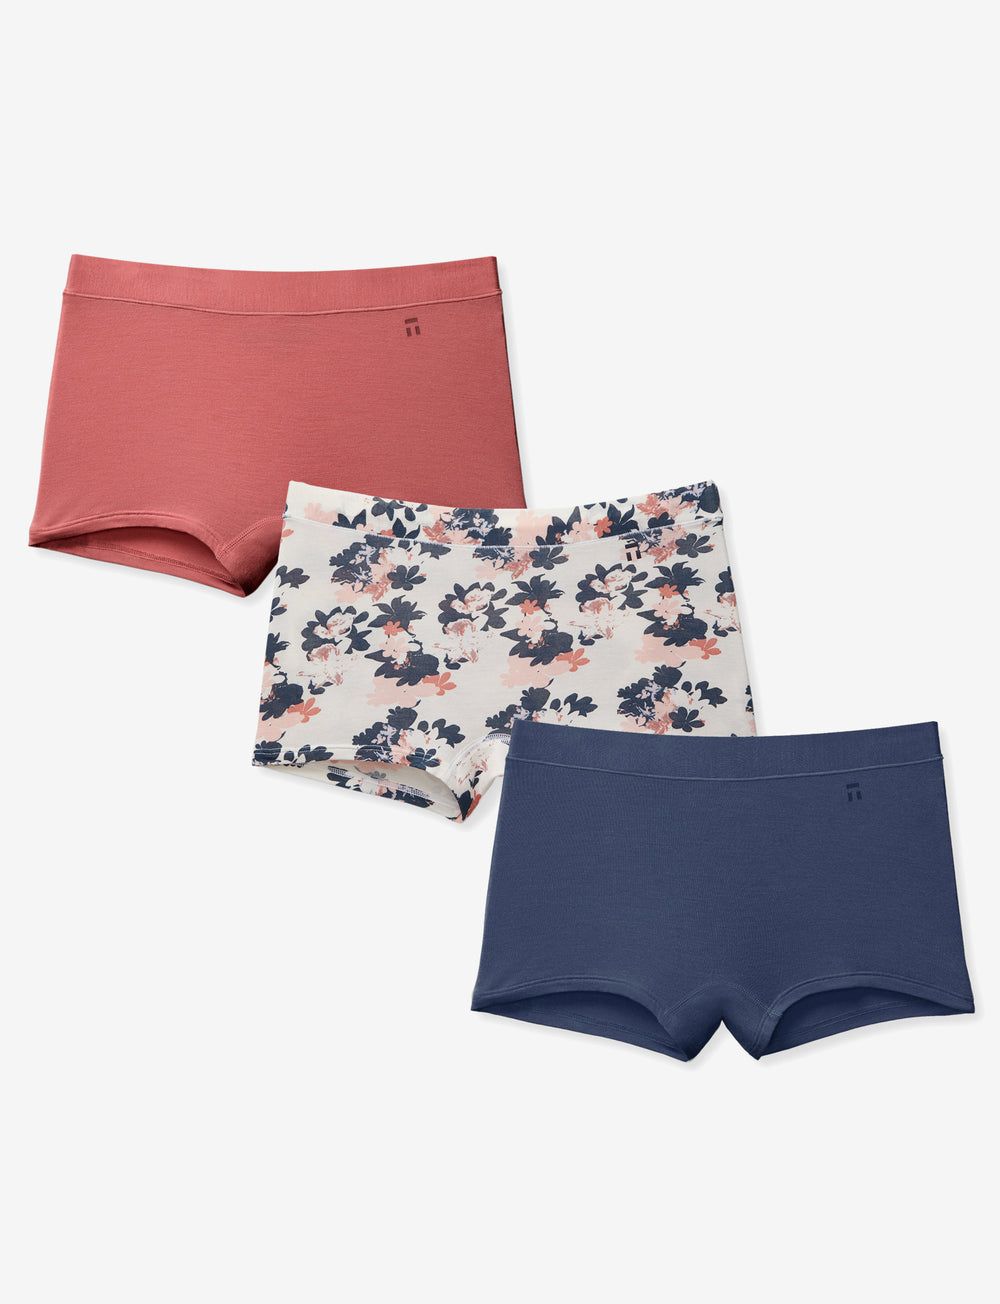 Women's Second Skin Boyshort 3 Pack Details Image